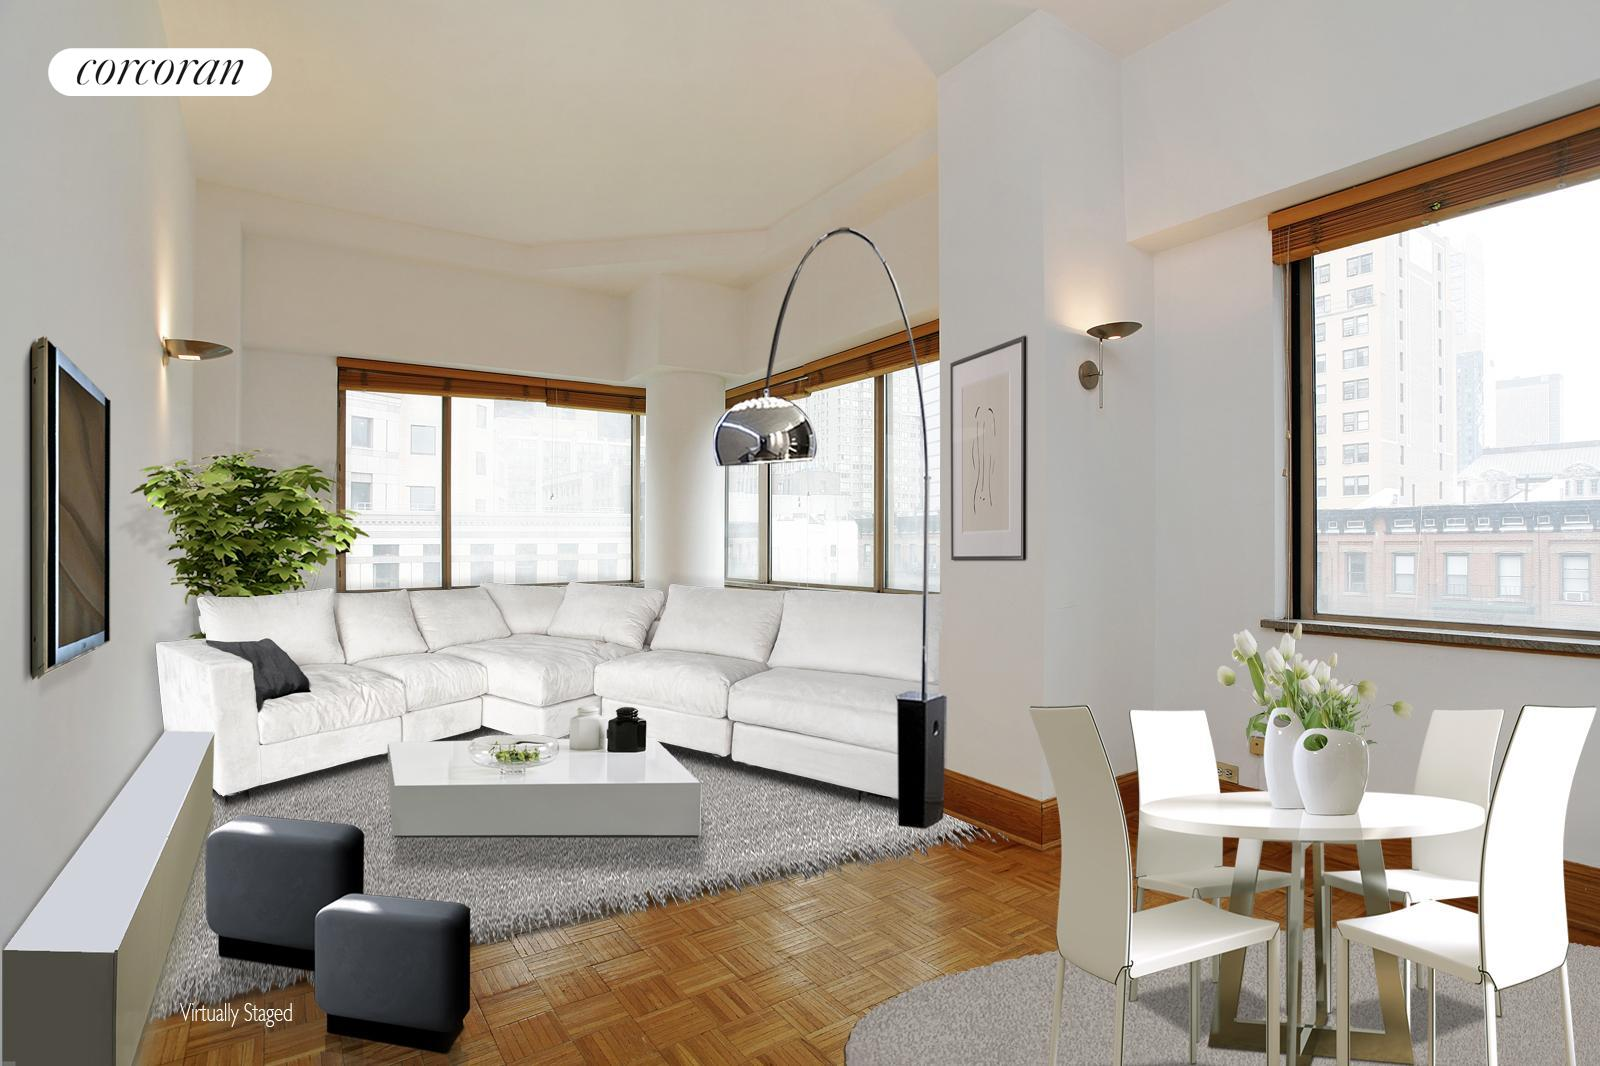 350 West 50th Street, 6K, Virtually staged Living/Sleeping